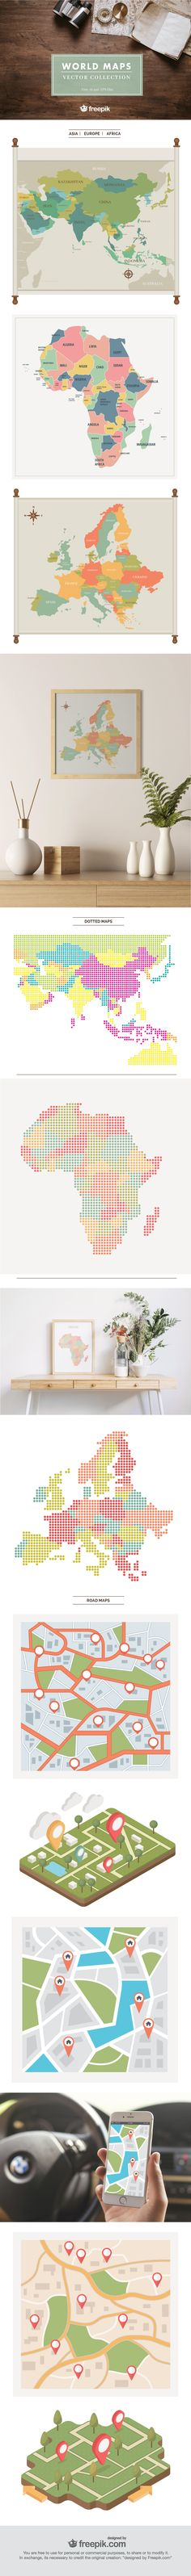 Usa map my freepik pinterest the world is at your feet with the freepik world maps vector collection freebie freepik gumiabroncs Choice Image